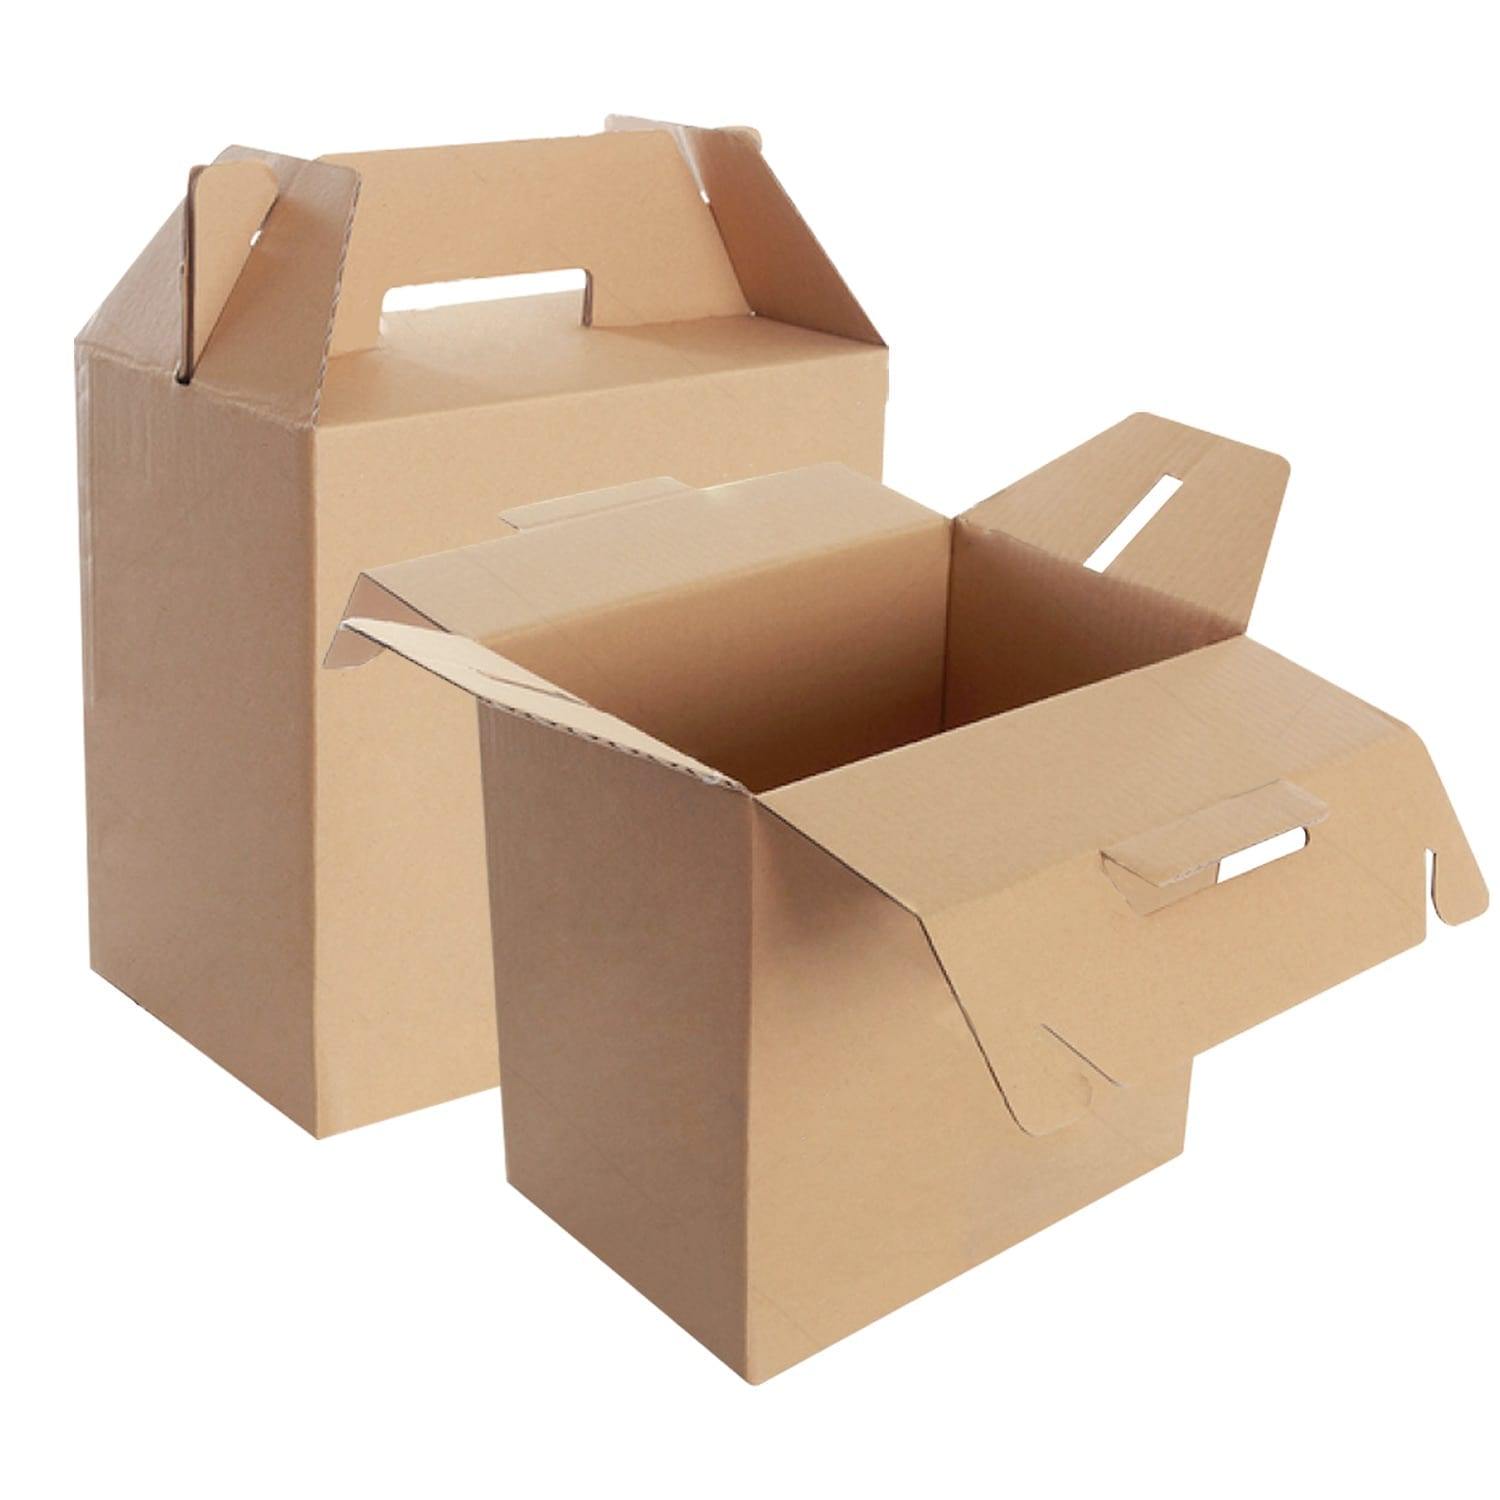 corrugated-cardboard-boxes